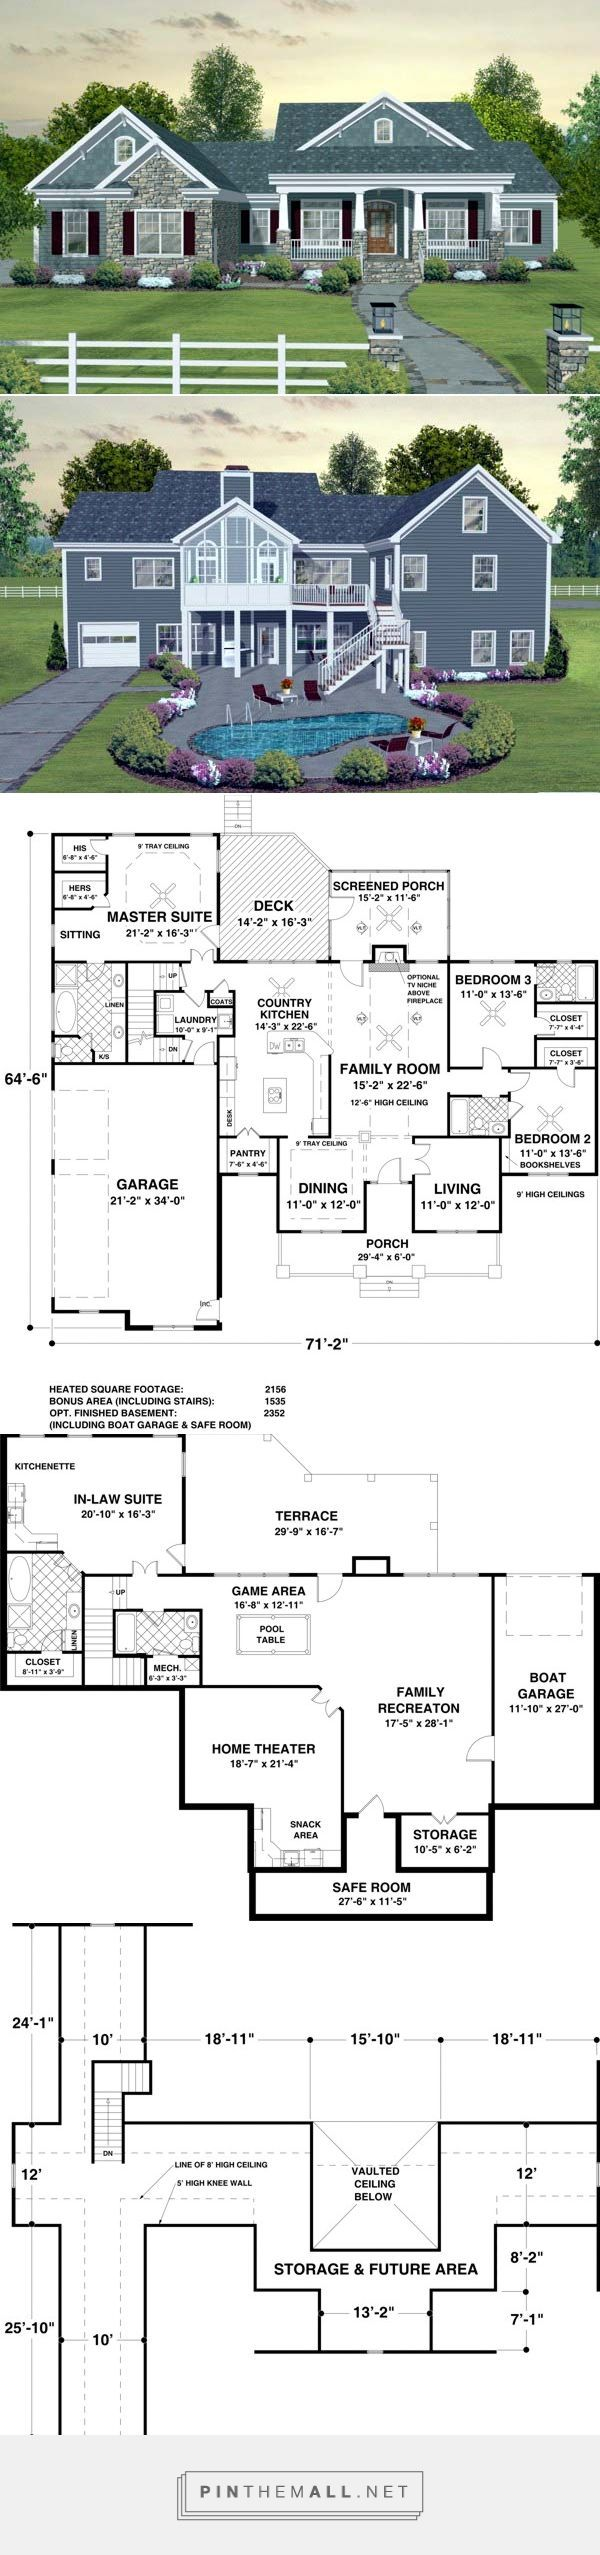 best 25 best house plans ideas on pinterest blue open plan house plan chp 45369 at coolhouseplans com a grouped images picture